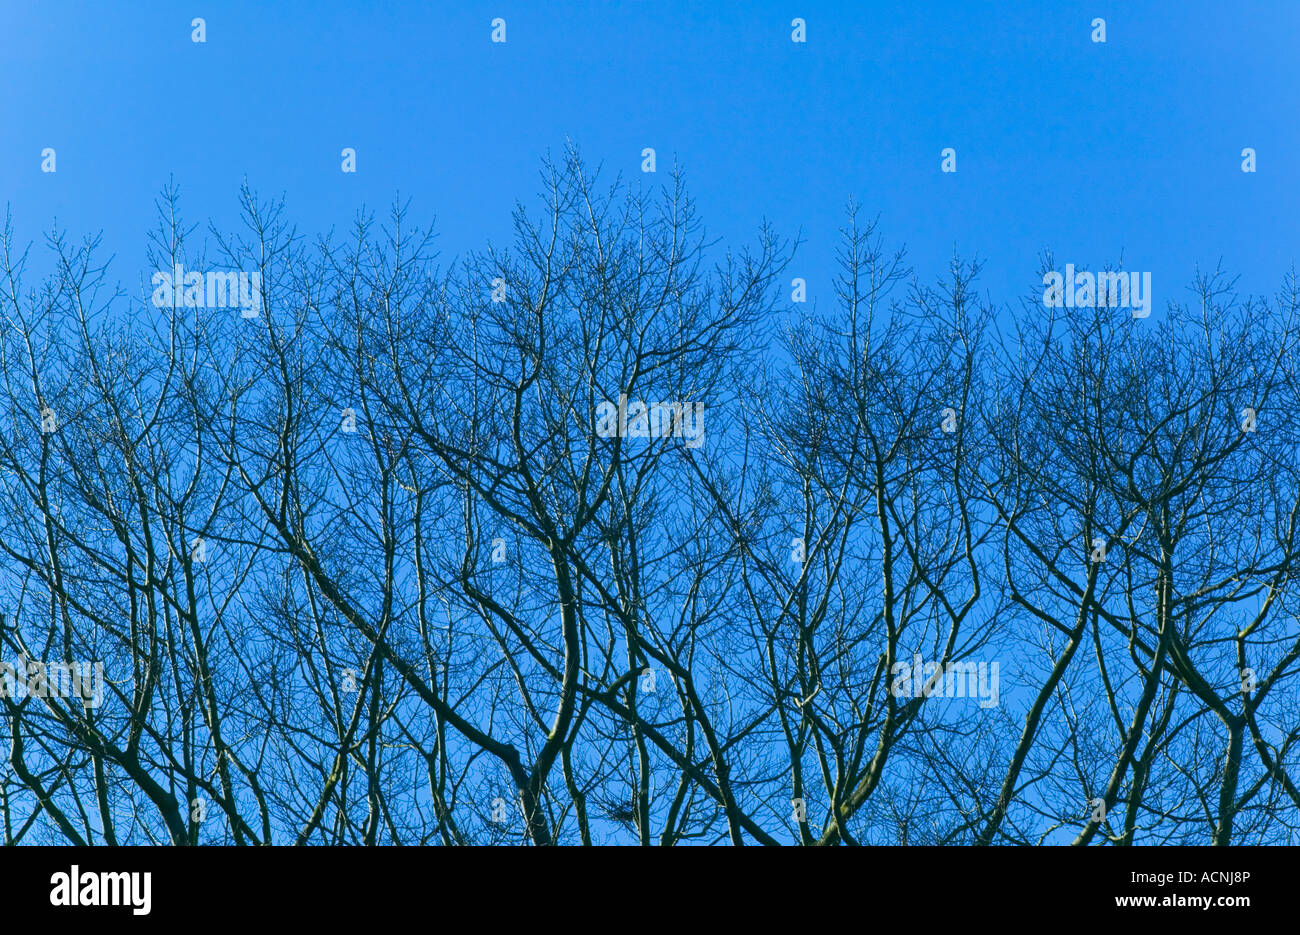 Tree branches against blue sky - Stock Image